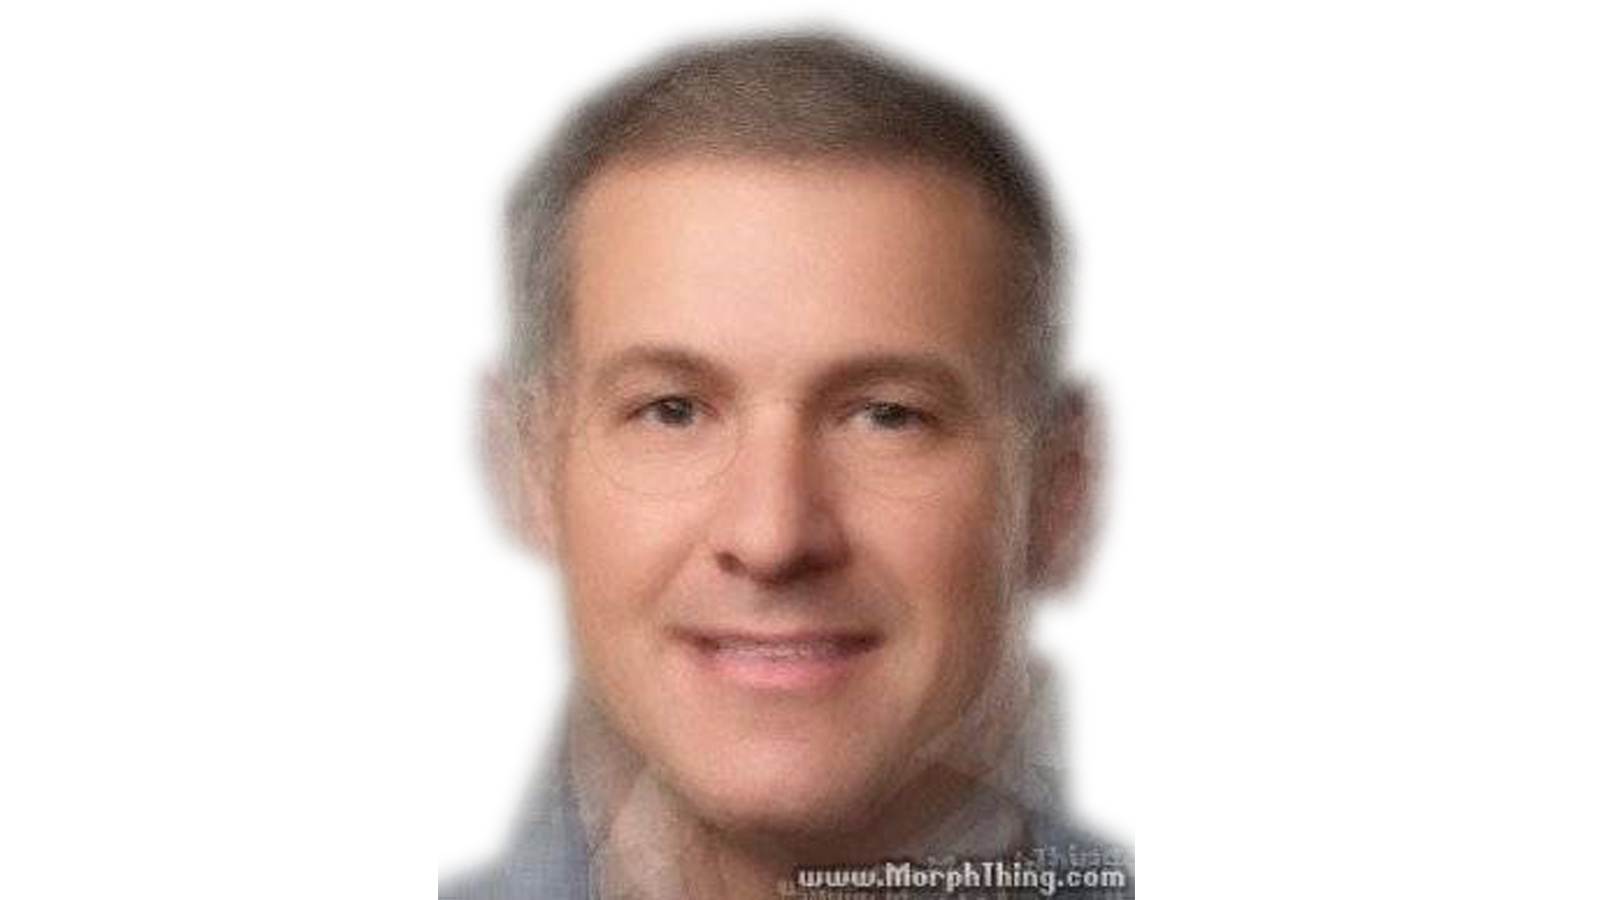 Every Apple Exec's Face Combined into One Jobsian Ideal